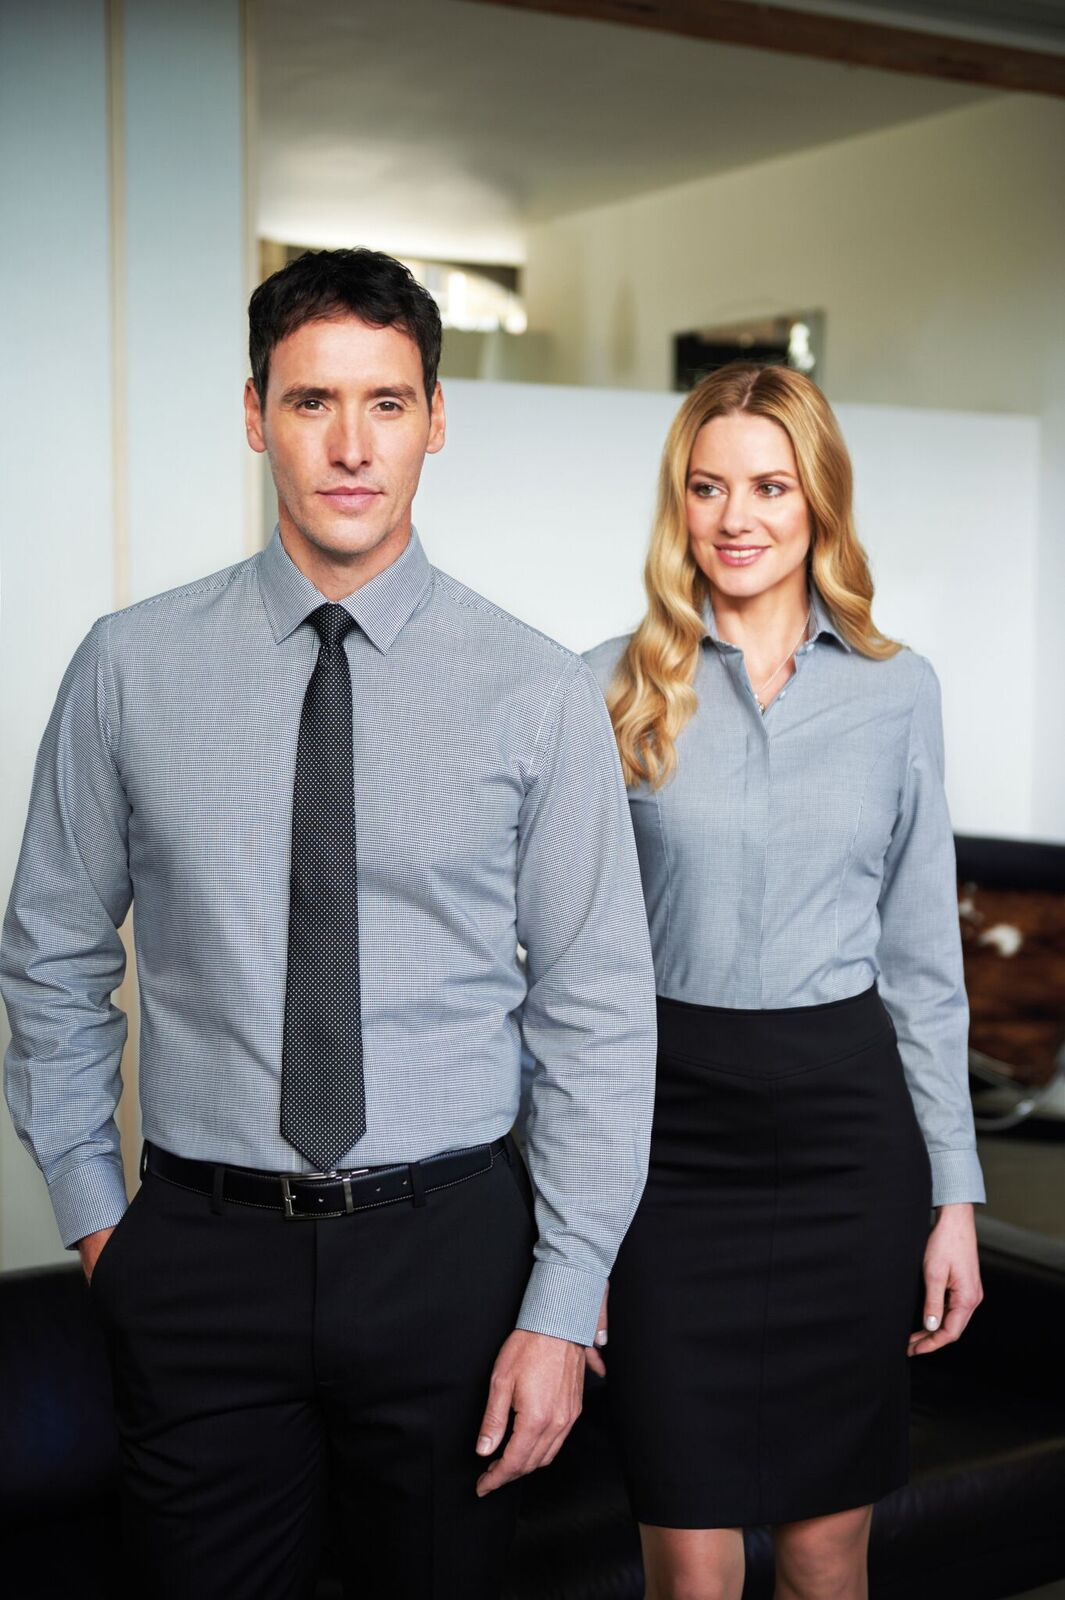 corporate-workwear-uniforms-supplier-red-penguin-malvern-worcster-uk